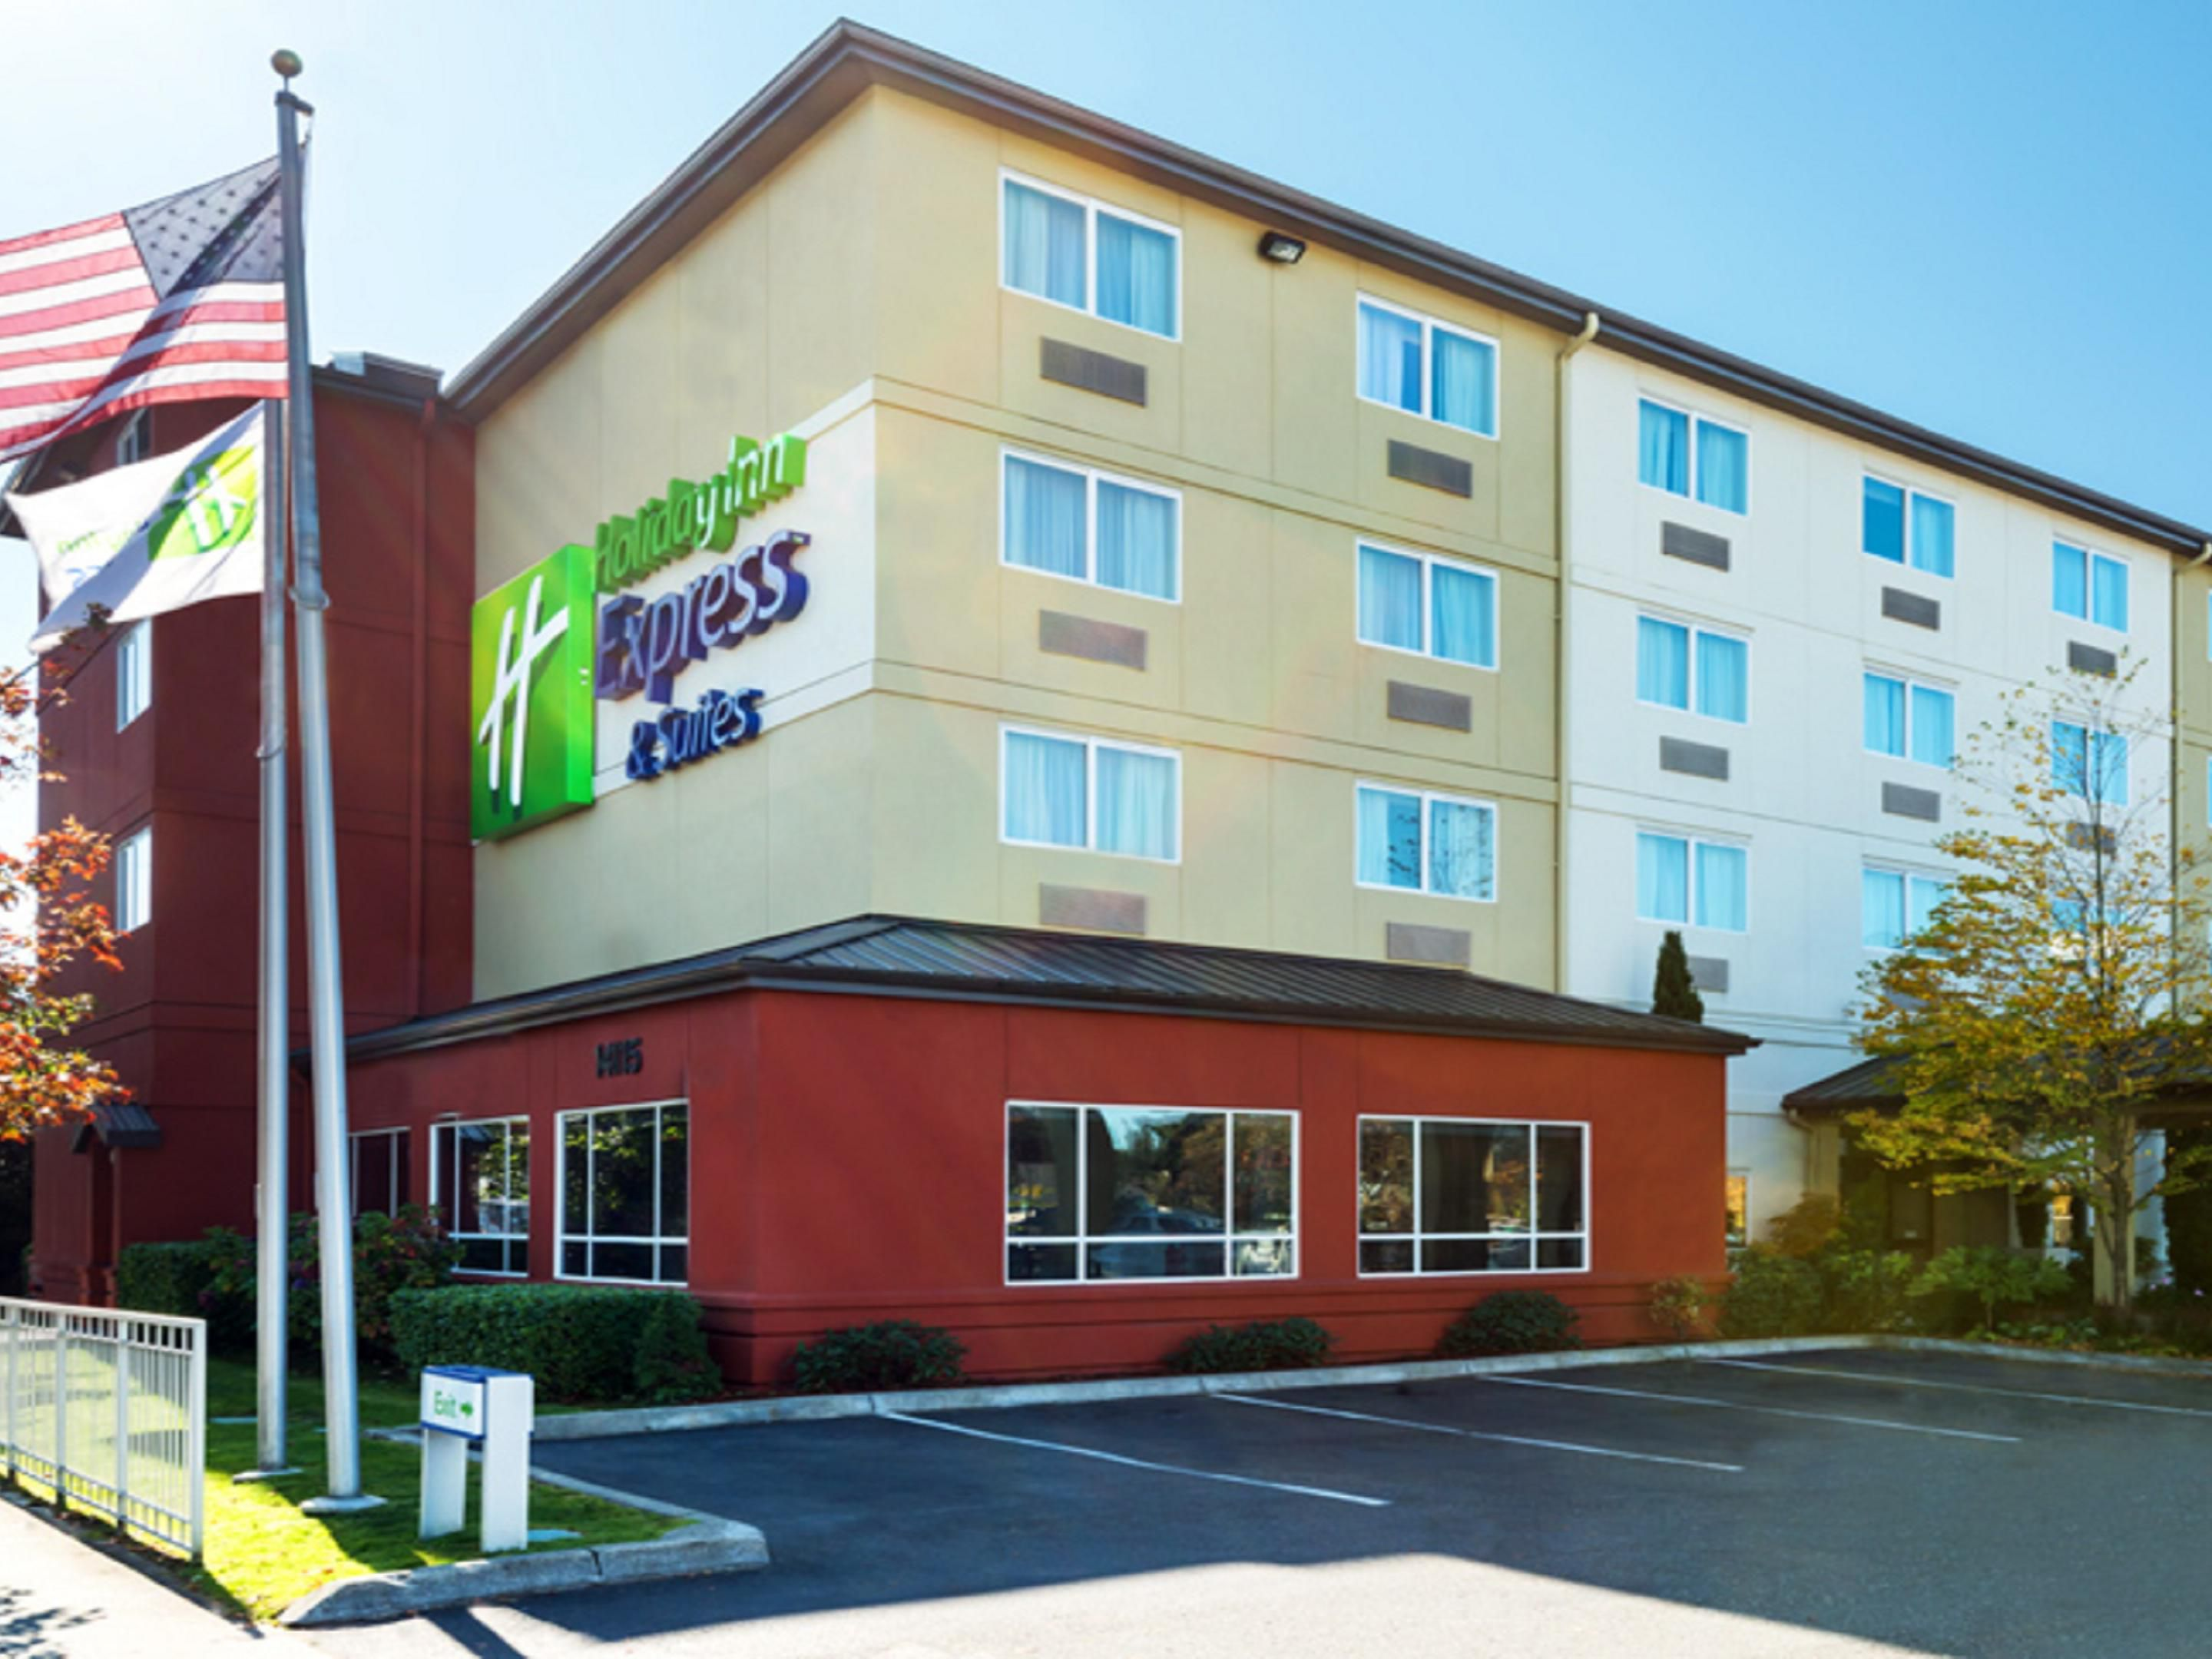 Welcome to the Holiday Inn Express North Seattle-Shoreline